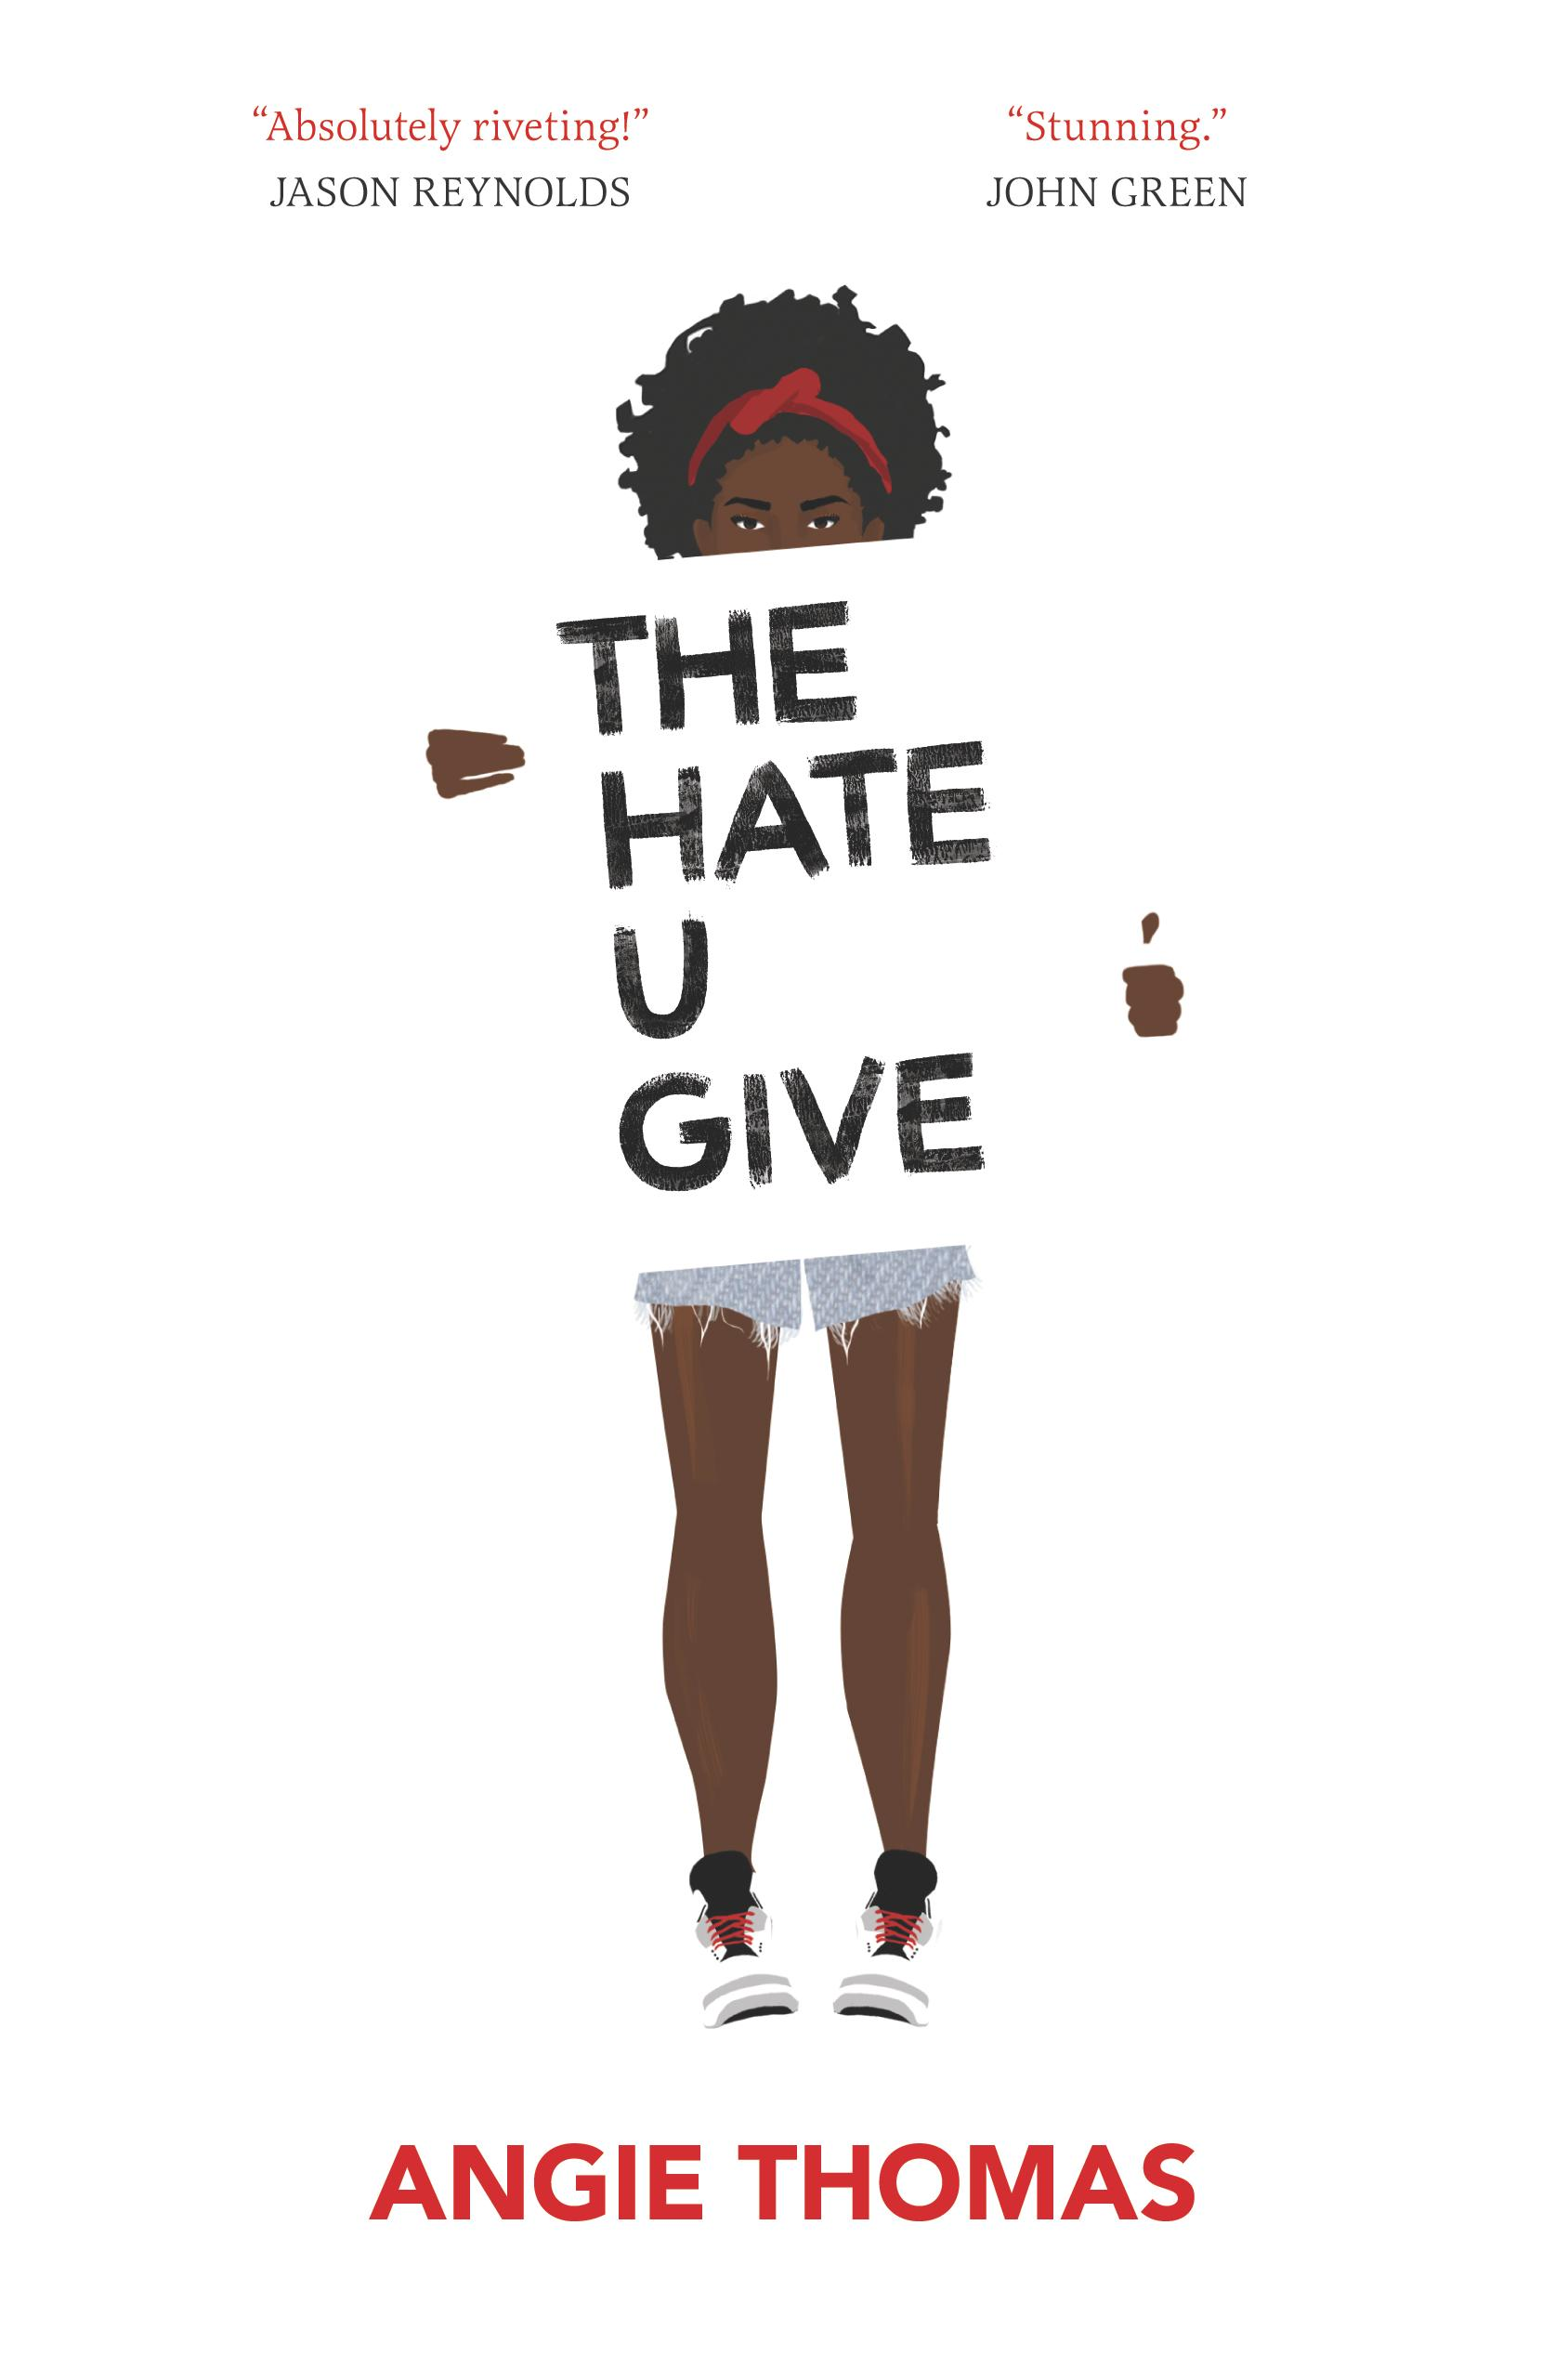 Books We Love: The Hate U Give by Angie Thomas | High Point University |  High Point, NC